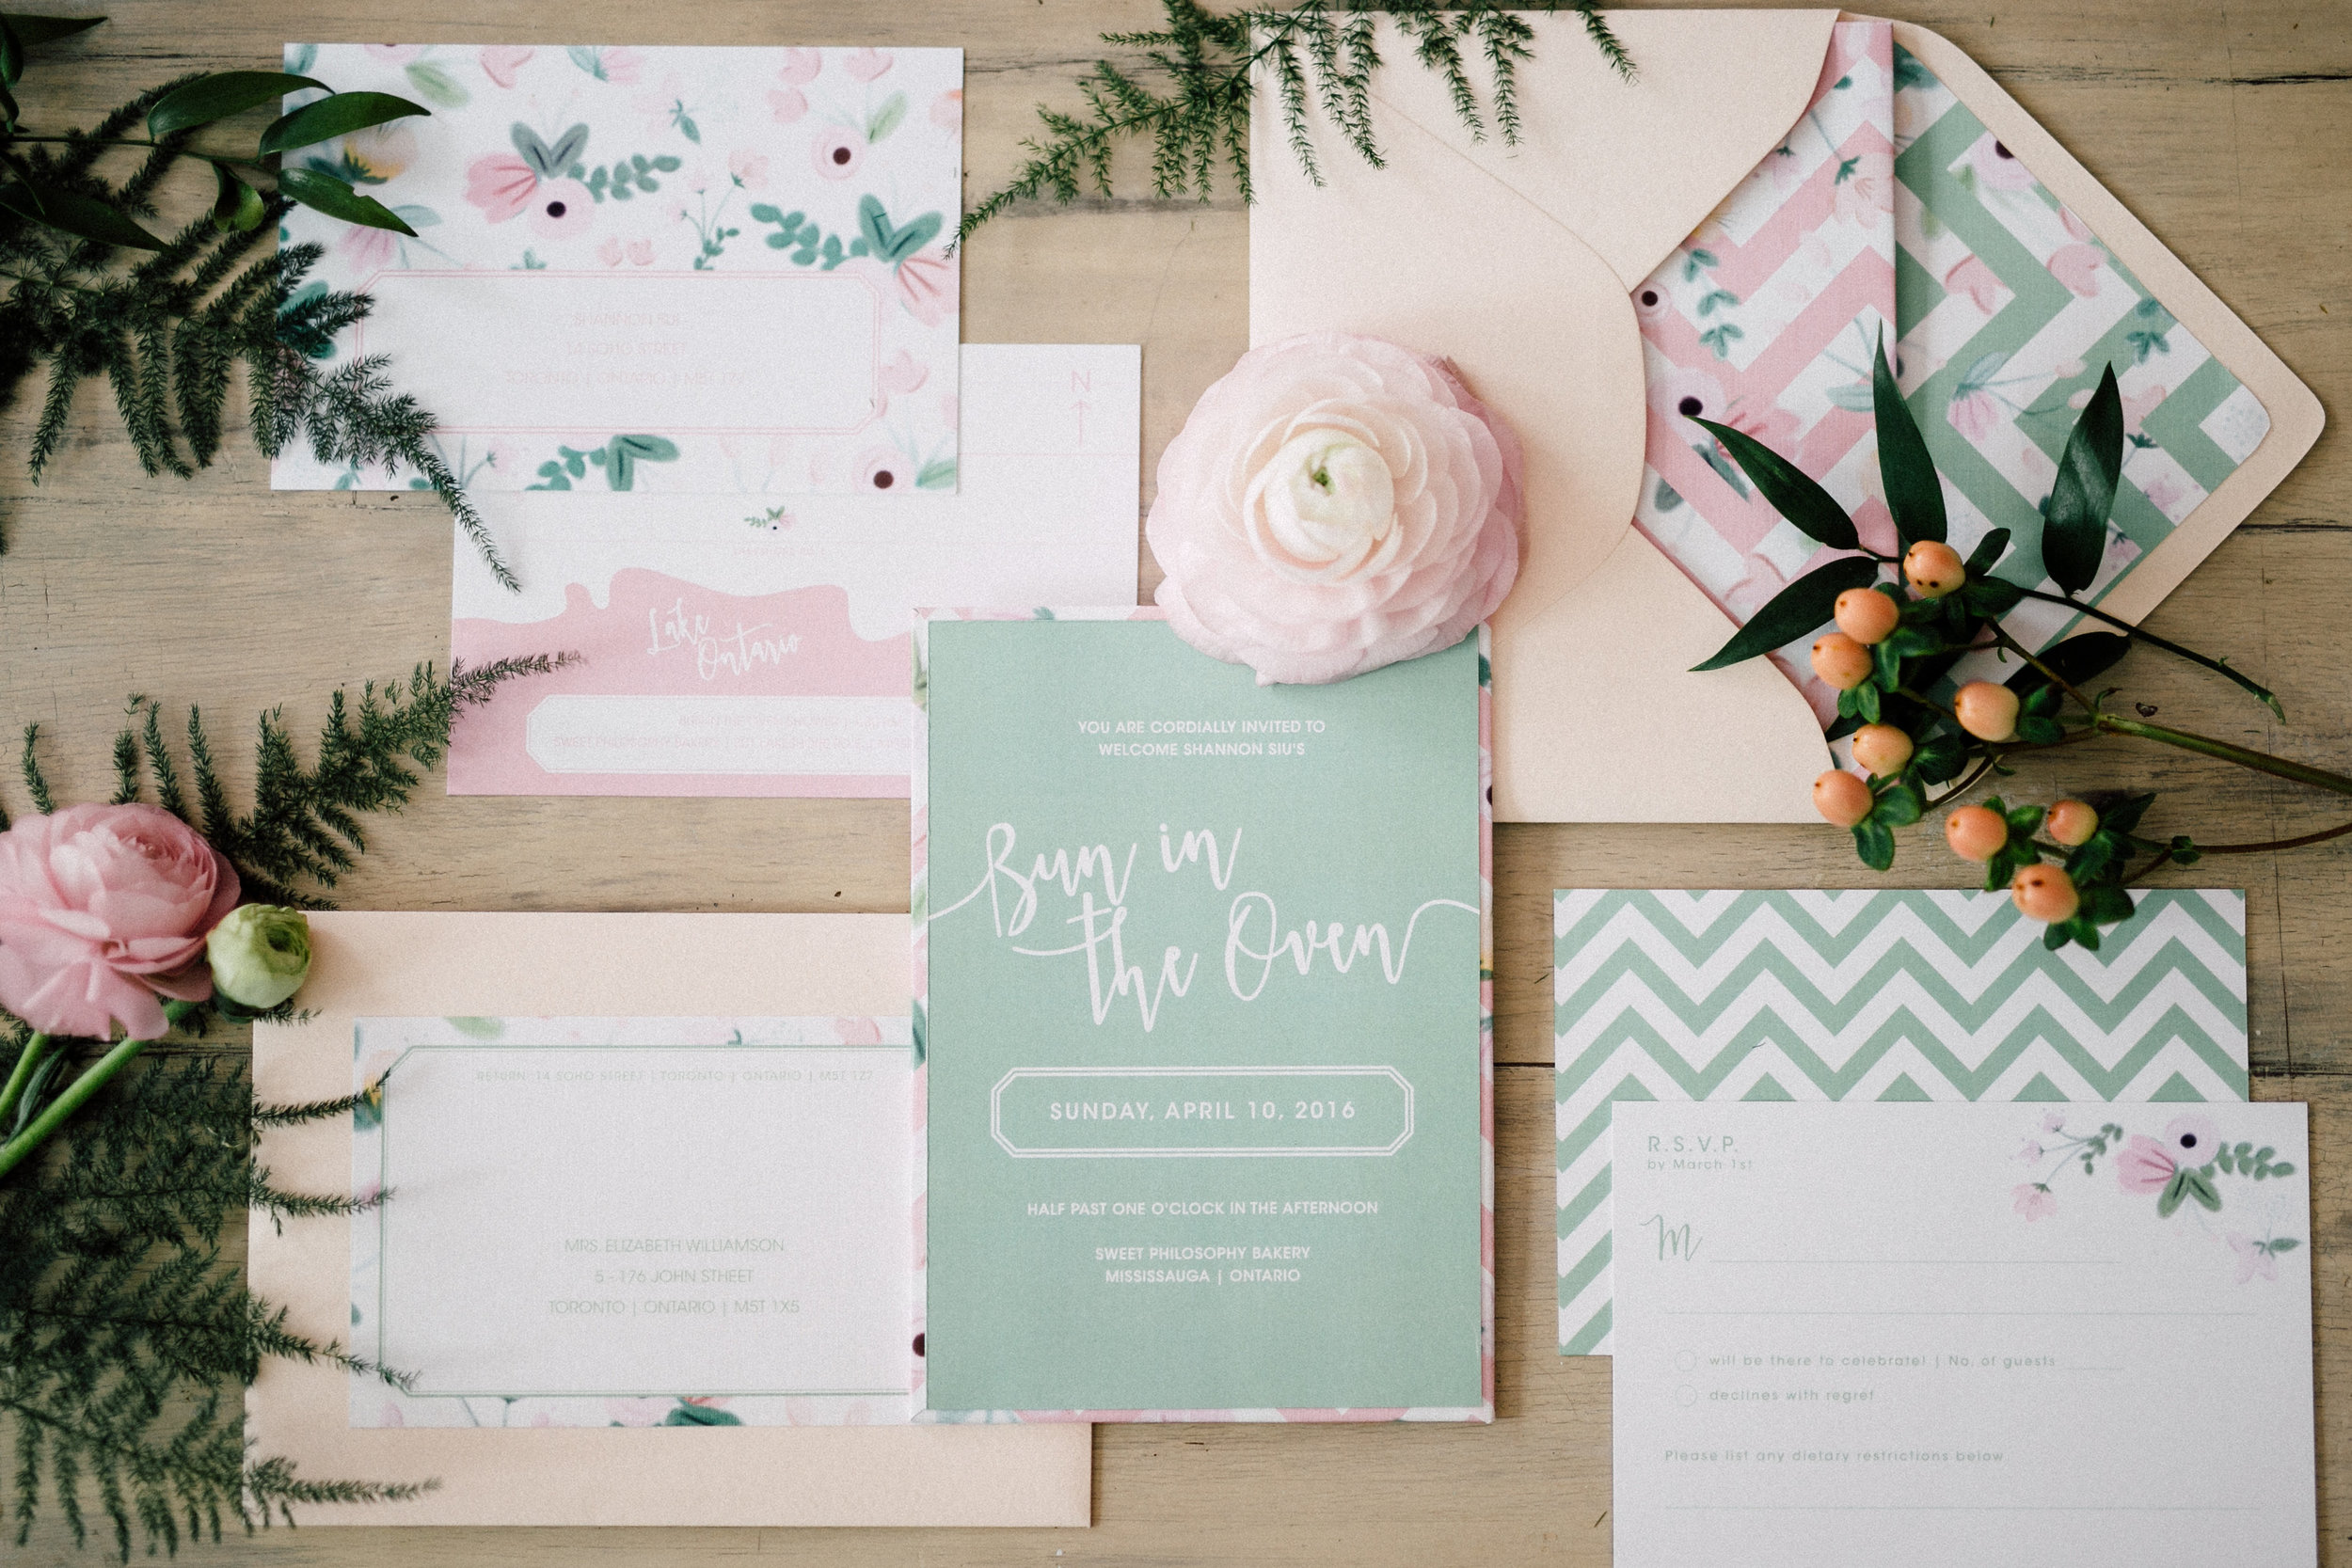 August In Bloom - Rifle Paper Co. inspired invitations - Bun In The Oven Baby Shower (Style Me Pretty & SMP Living)